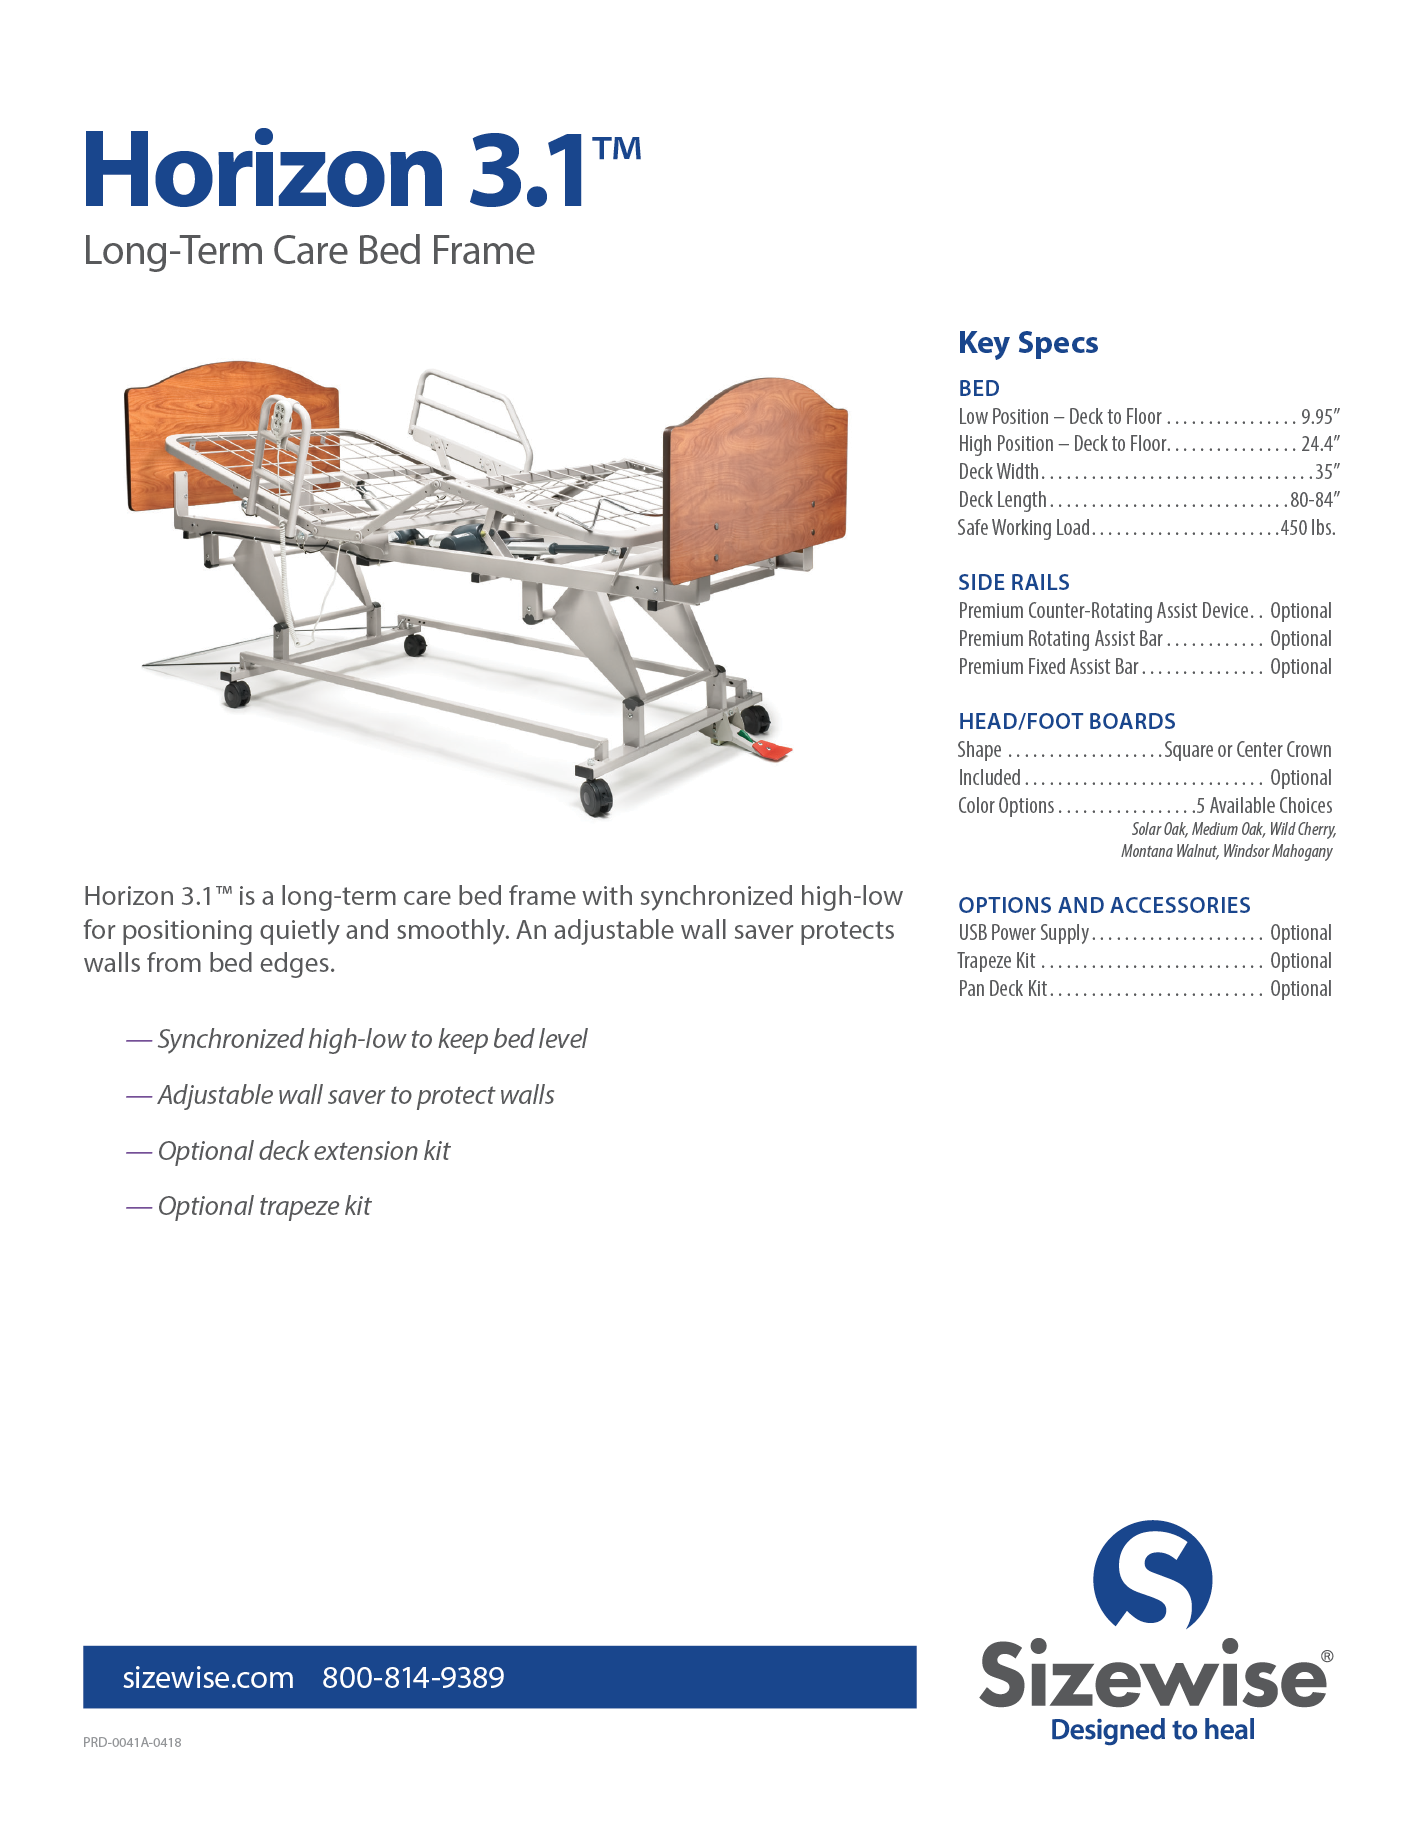 Sizewise Hospital Beds And Bed Frames For Bariatric